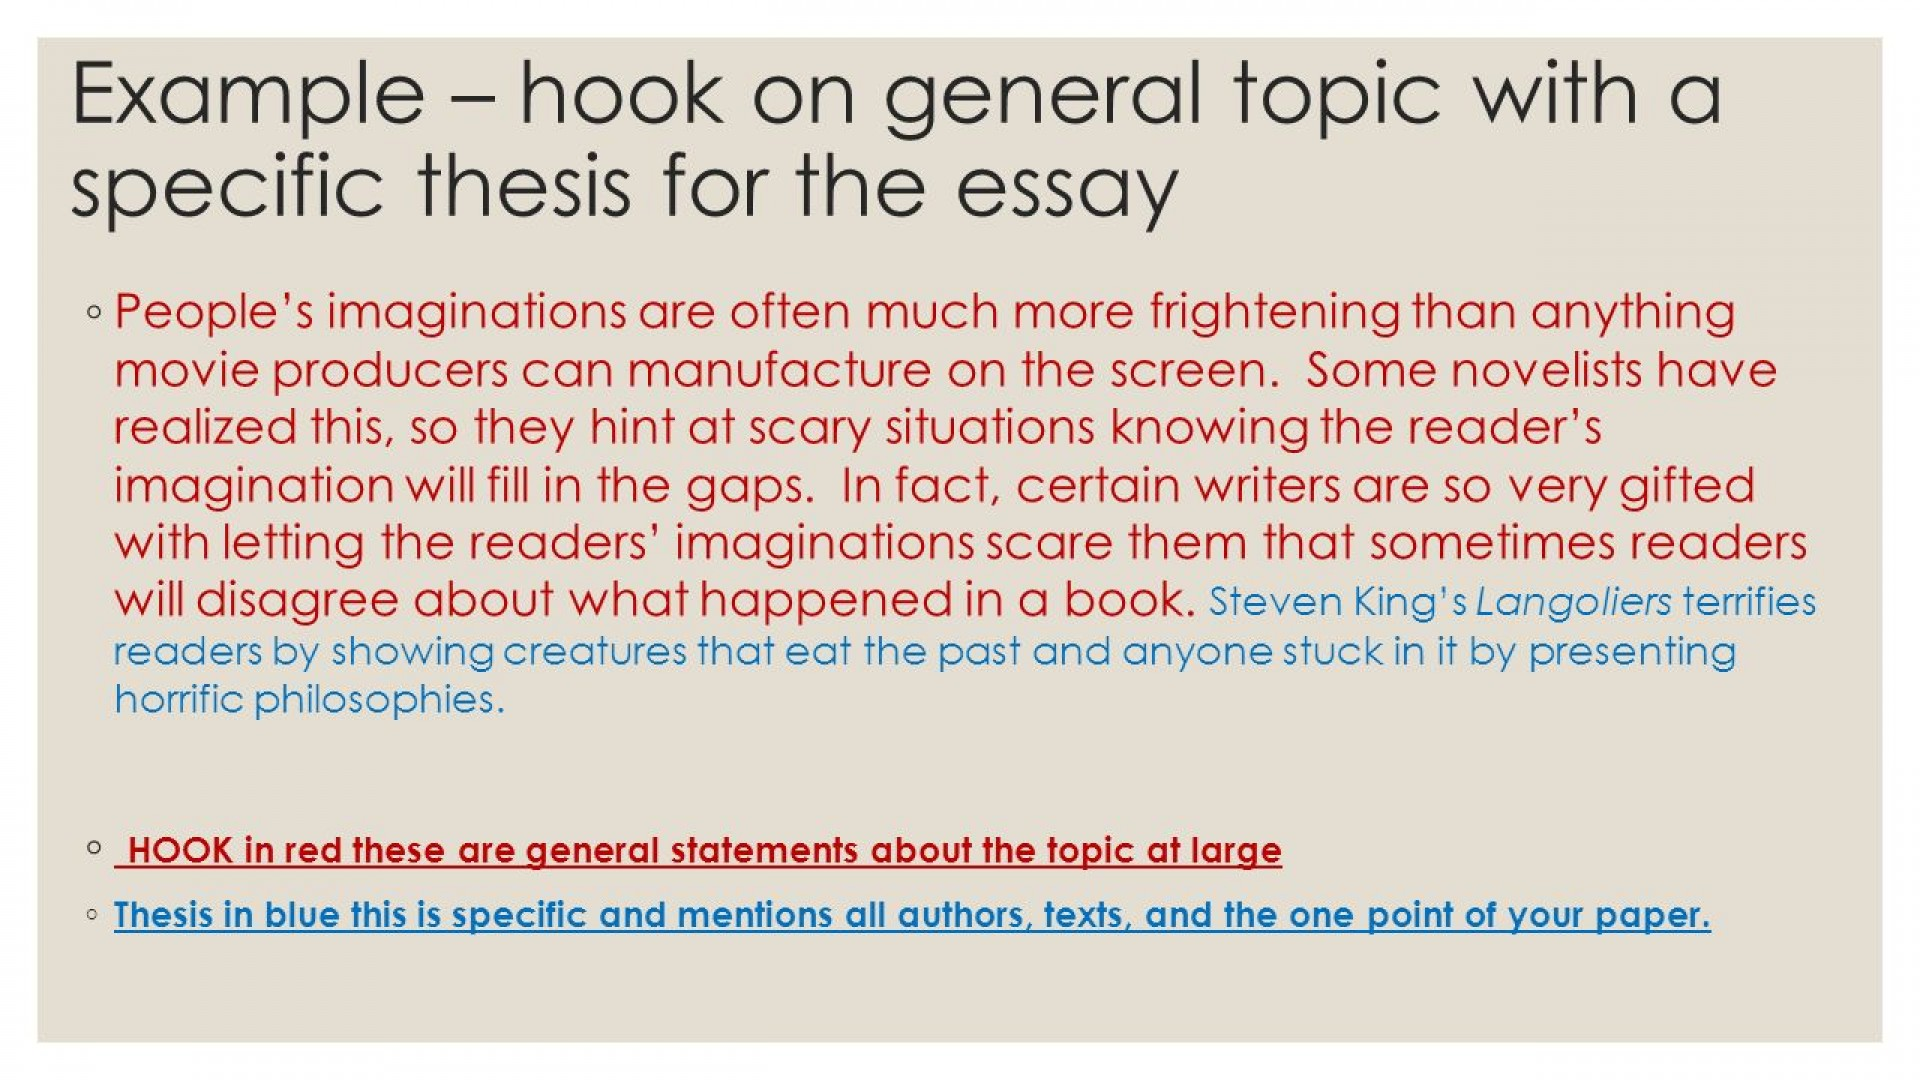 009 Essay Example Hooks For Essays Quotes About Writing